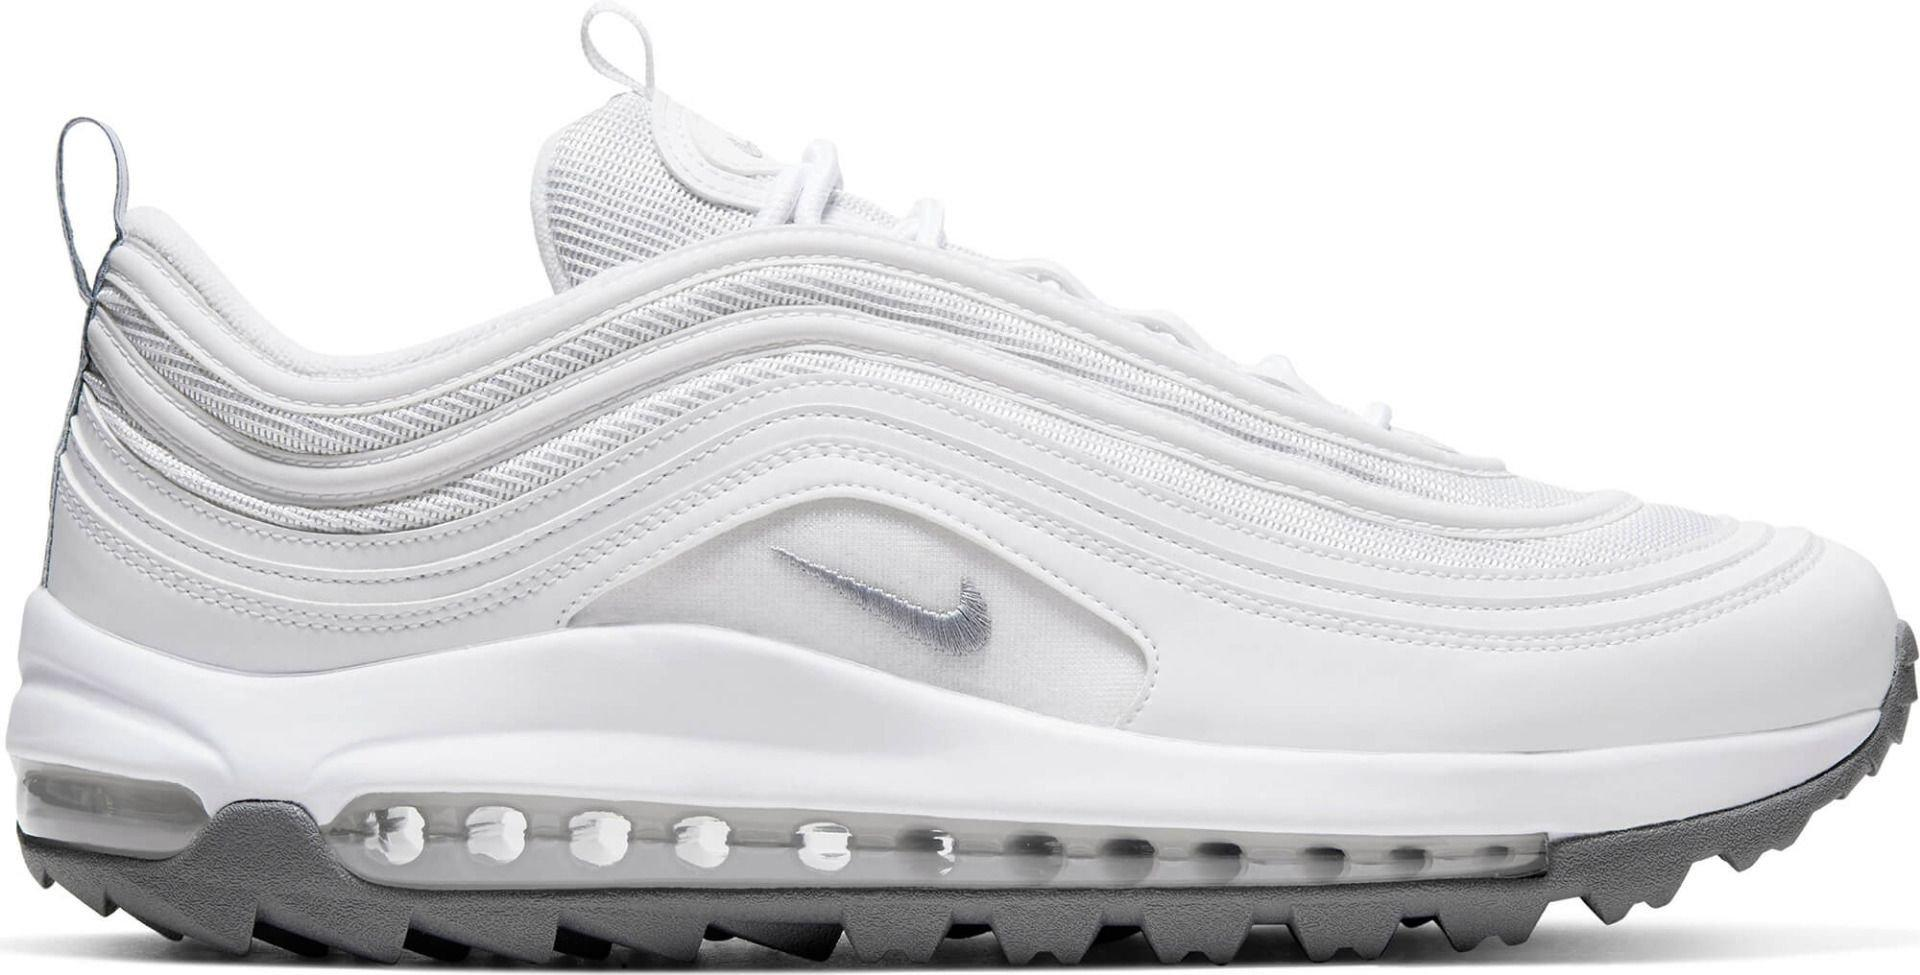 Nike Air Max 97 G Golf Shoes 2020 White Metallic Cool Grey White